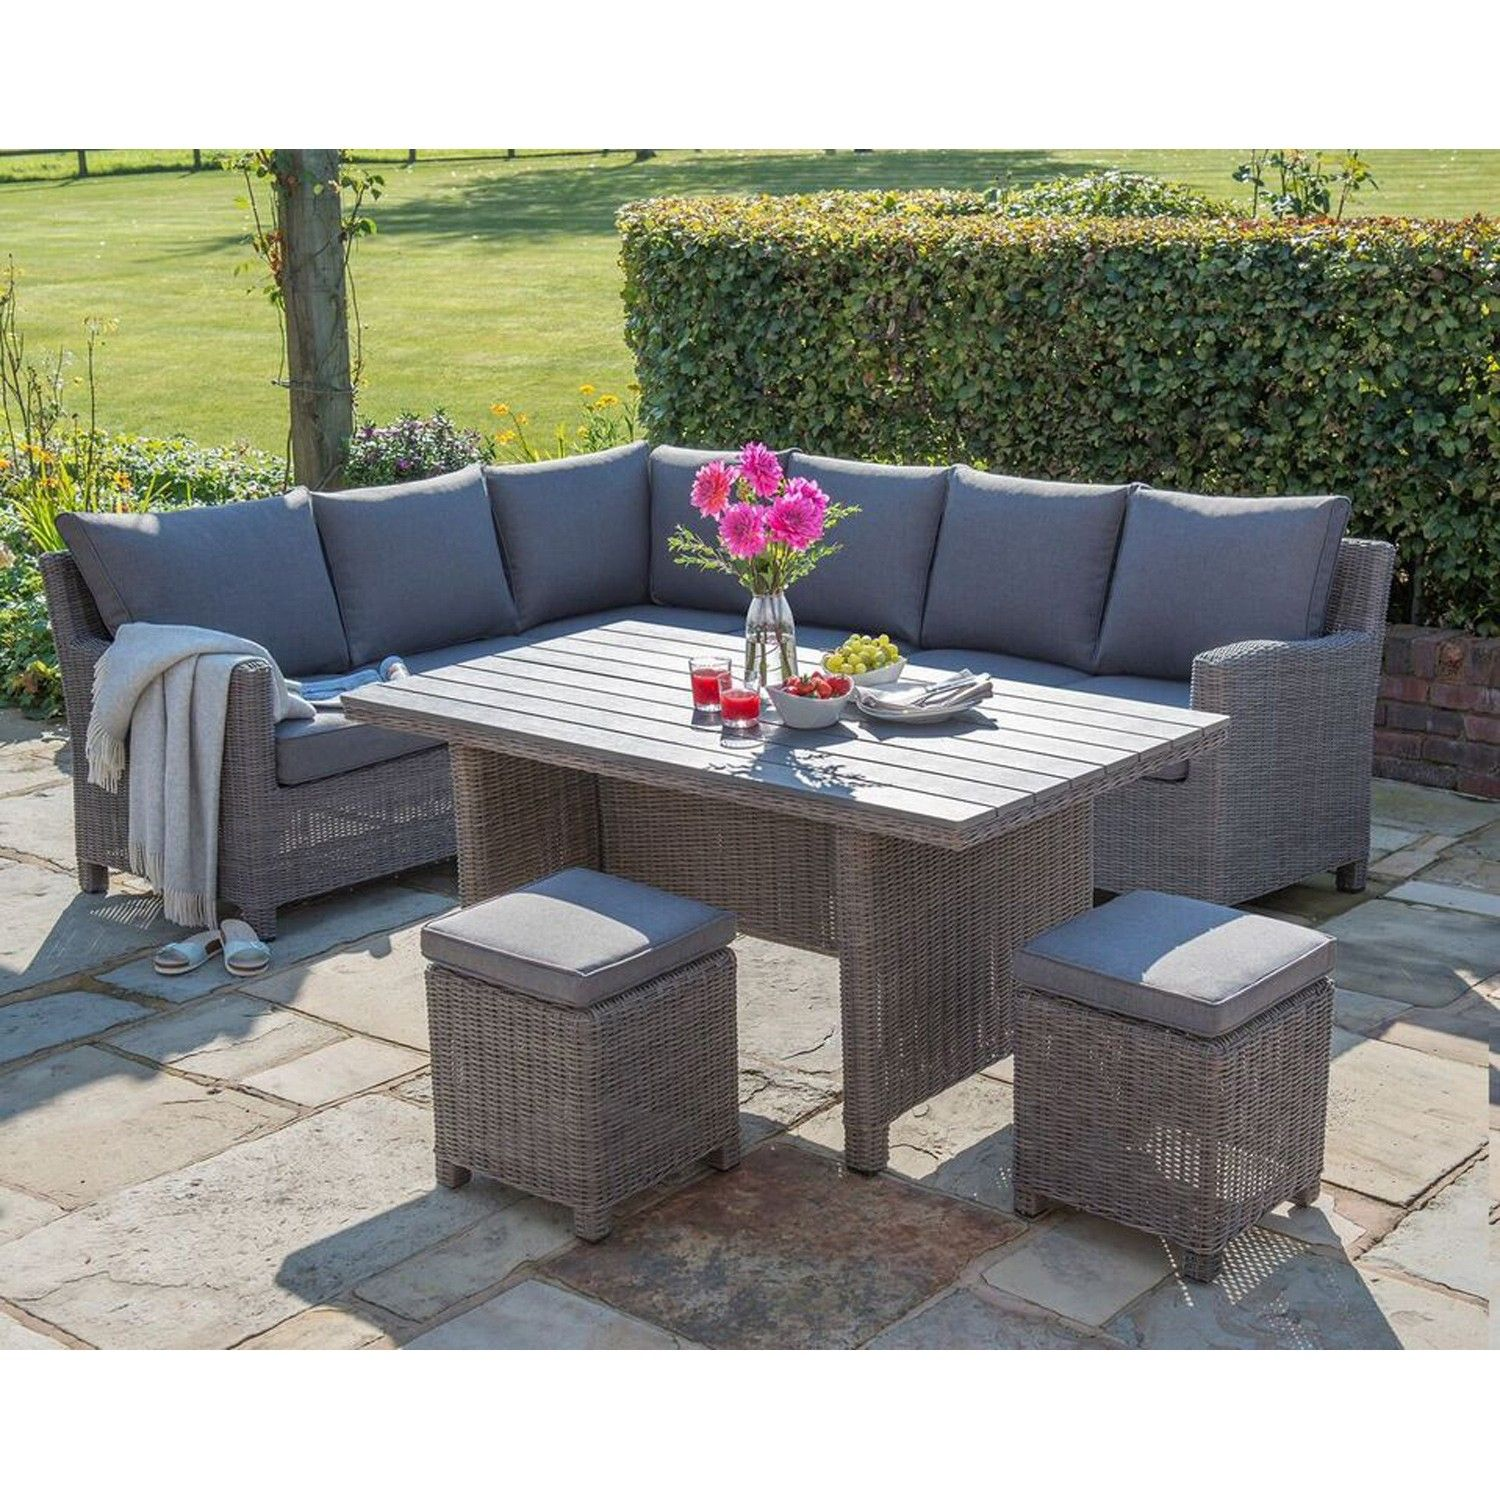 The Kettler Palma Corner Set Brings Luxury To Your Garden With The Casual  Dining Table And Comfy Sofas For Dining And Relaxation. The Two 3 Seater  Sofas And ...